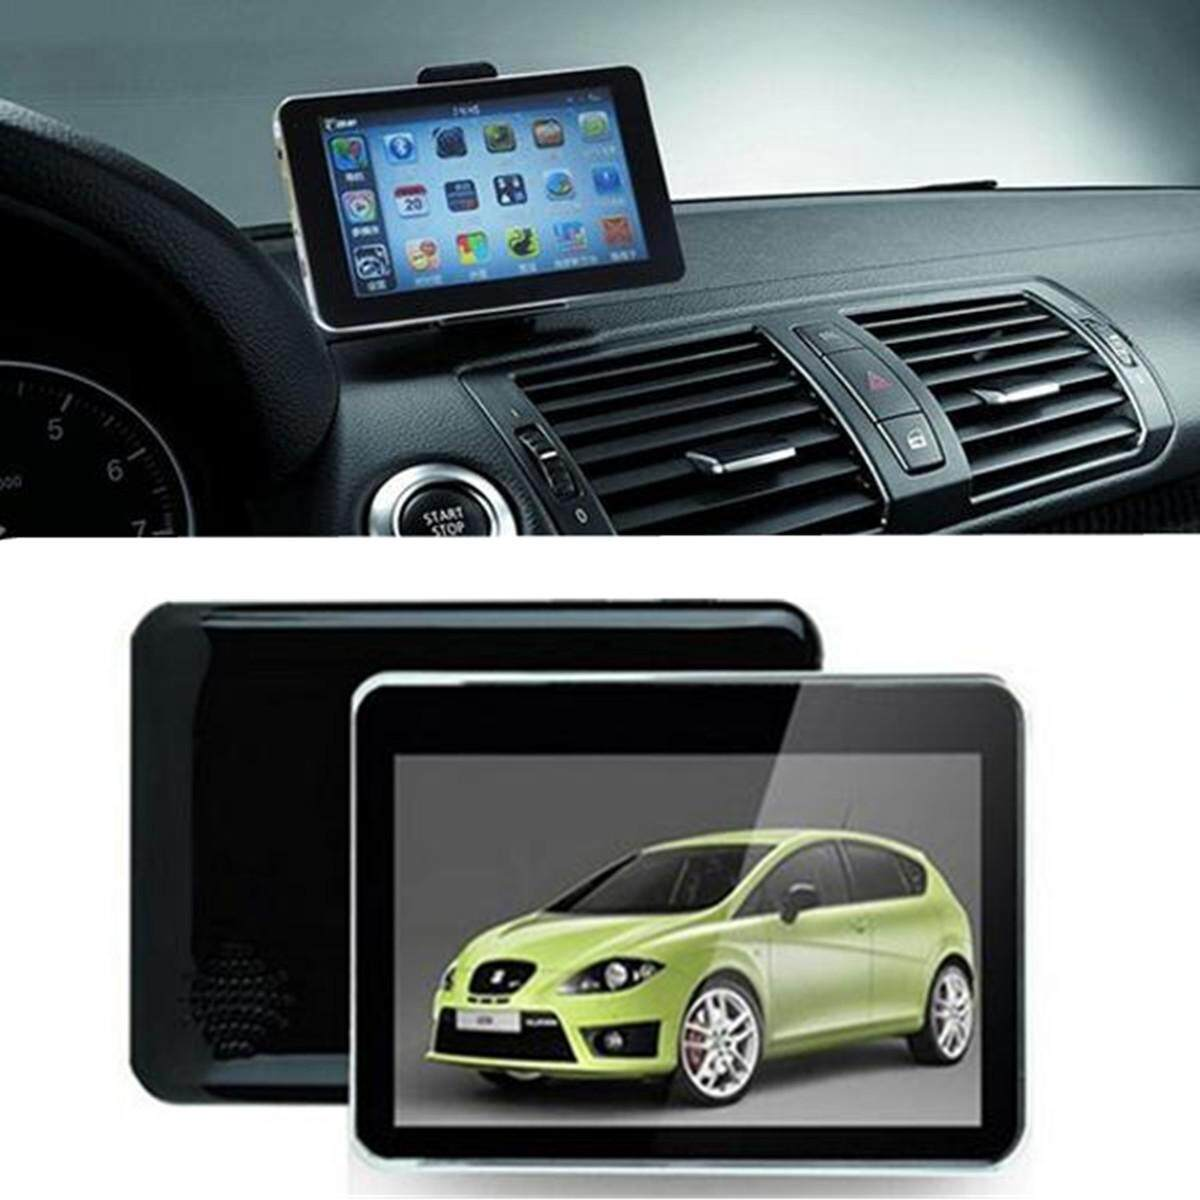 4GB 5'' TFT Touch Screen Auto Car GPS Navigation SAT NAV FM Free Map Update  MP3 America/Australia/Europe